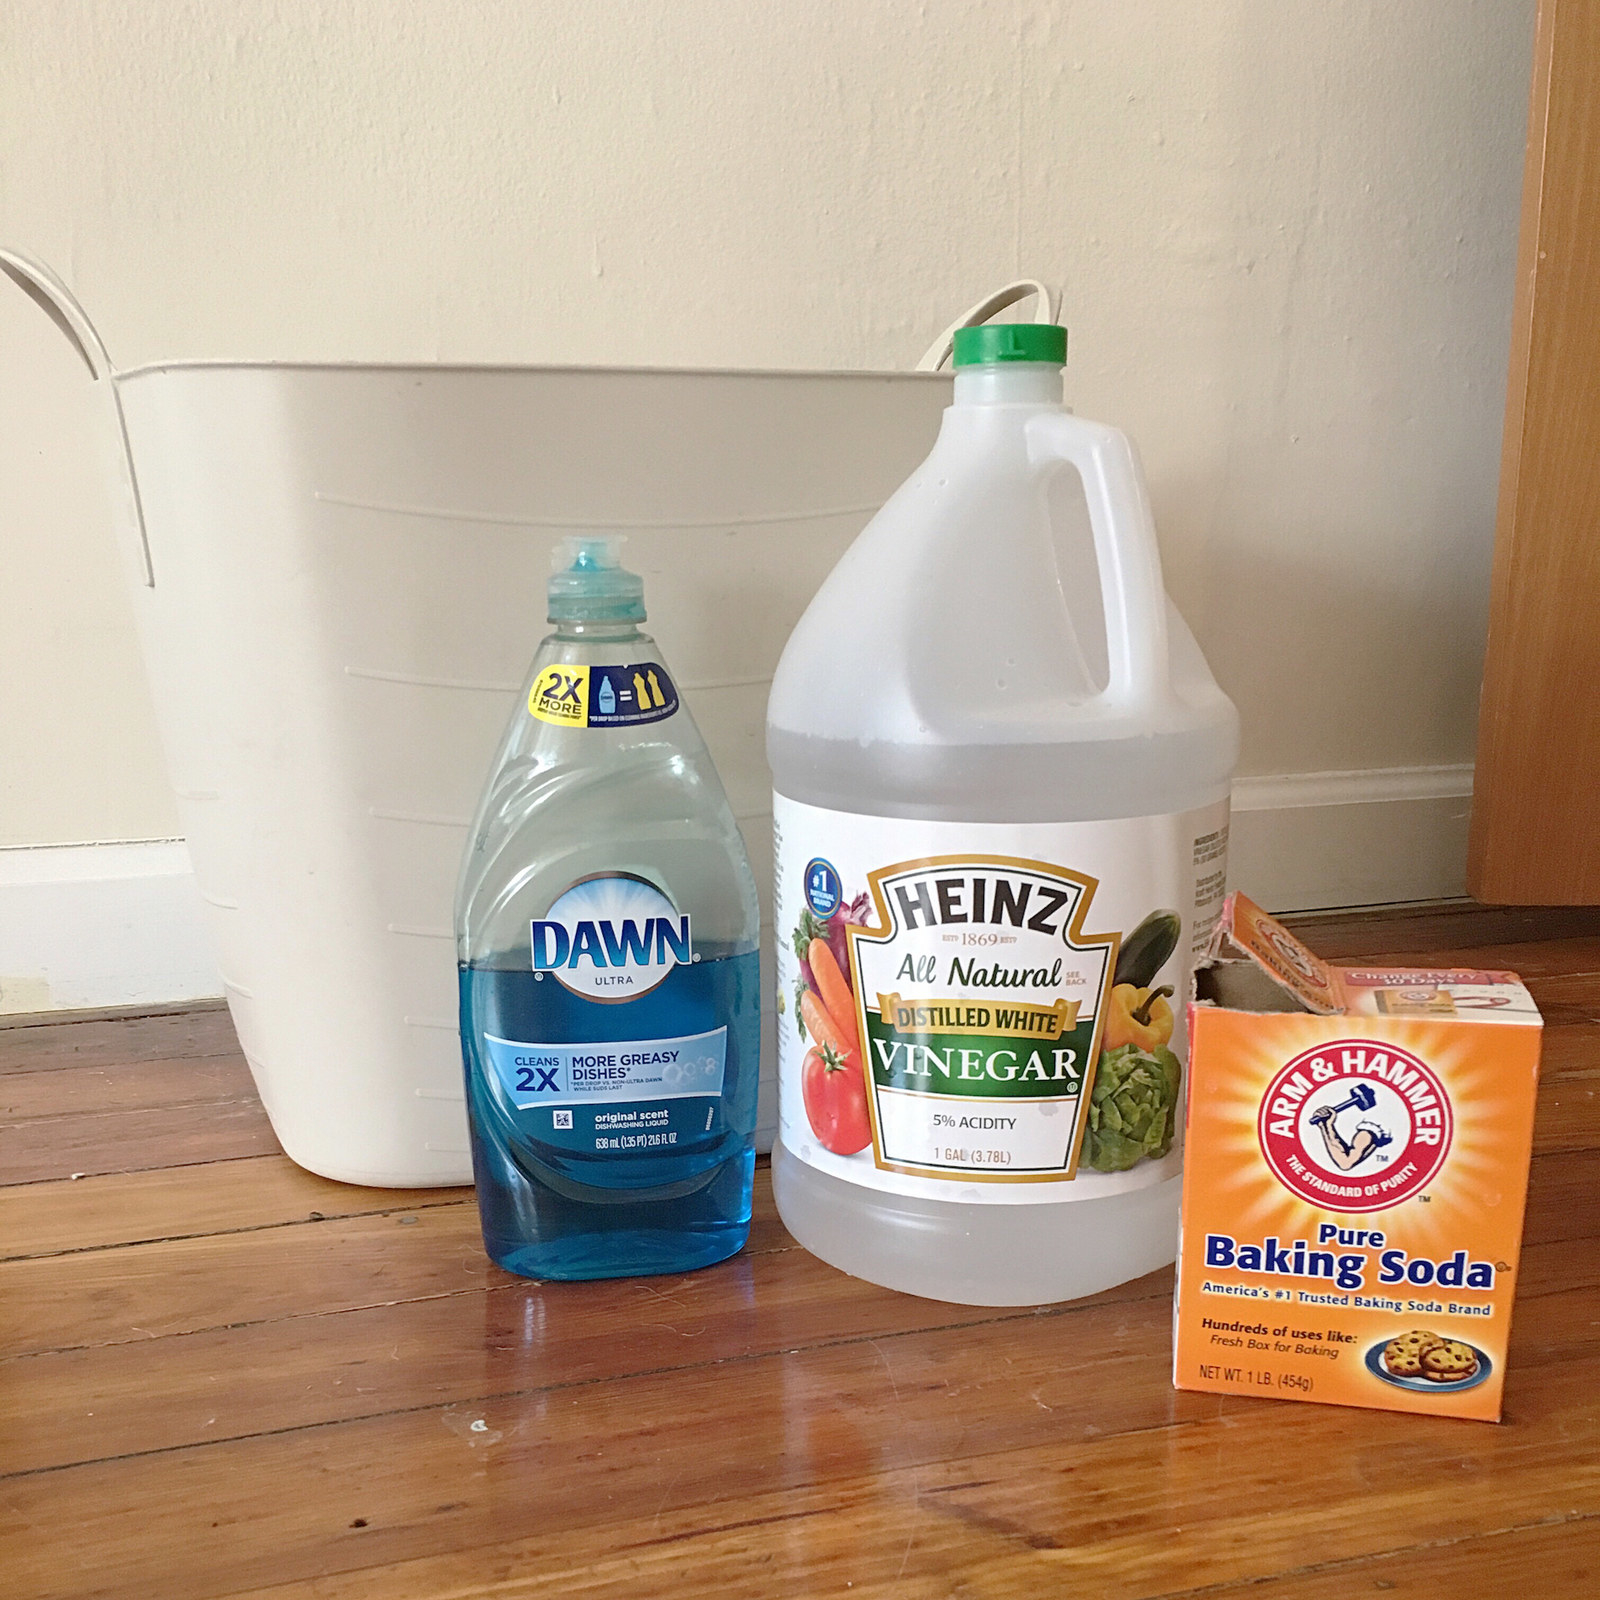 Can You Use Vinegar On Wood Floors: I Tested 9 Popular Pinterest Cleaning Hacks And Here's